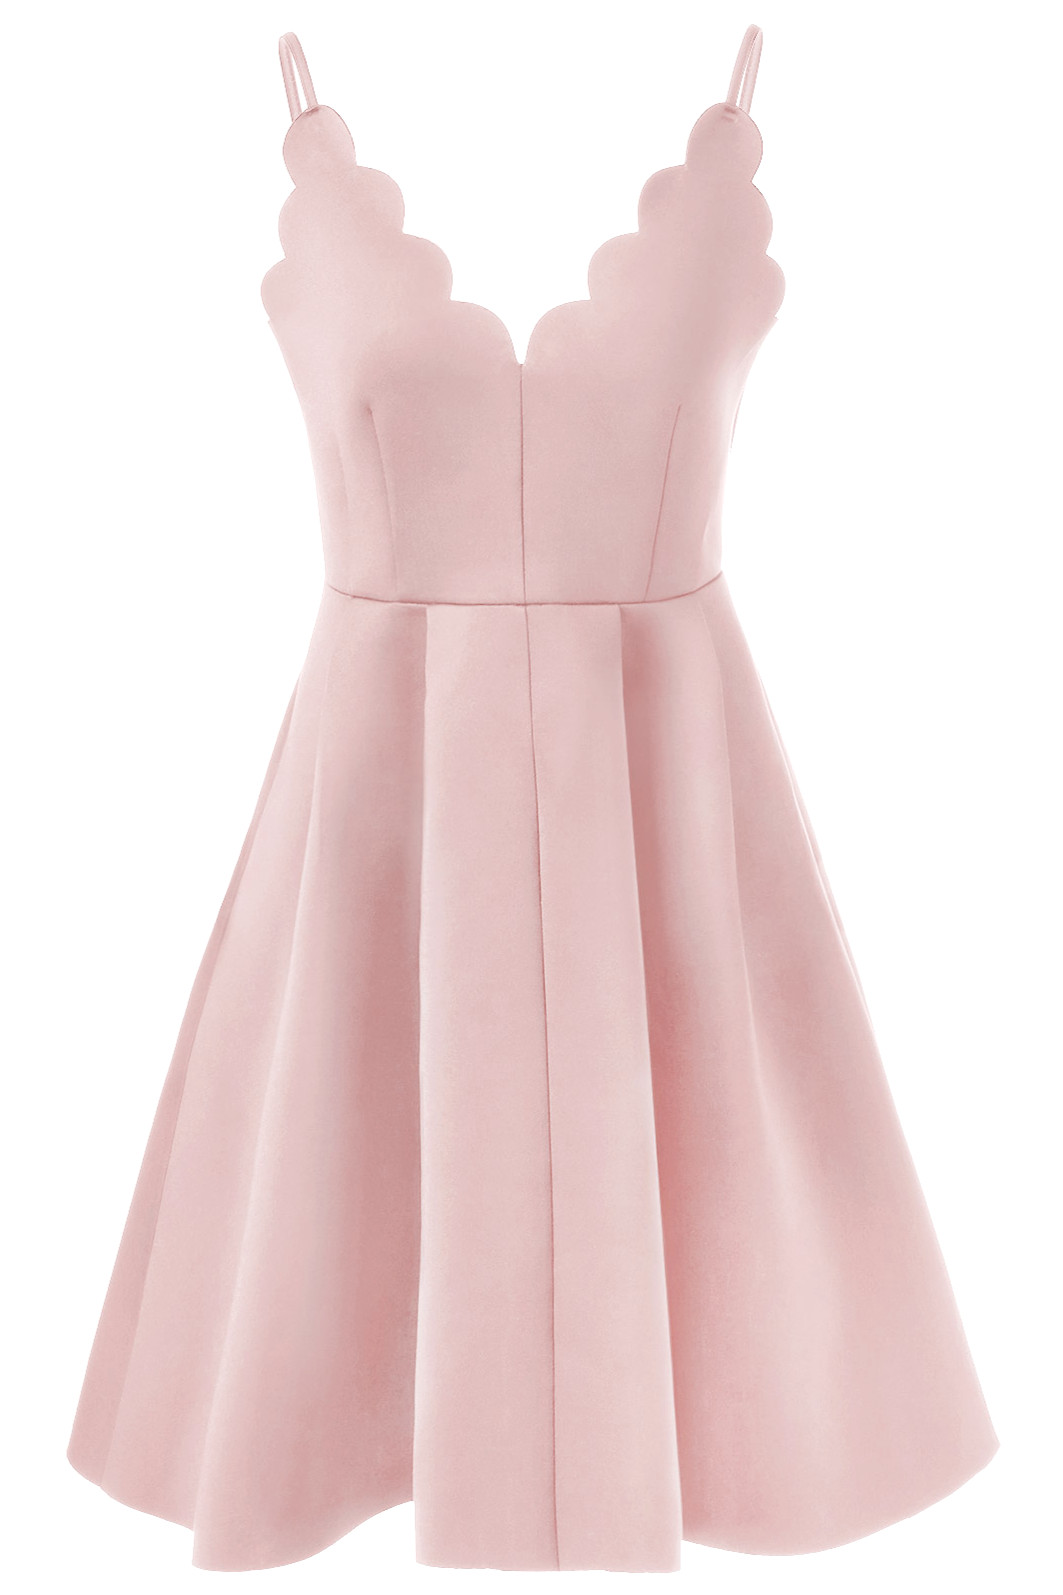 74f16db391a2 Simple A-Line Spaghetti Straps Pink Satin Short Homecoming Dress With Pleats